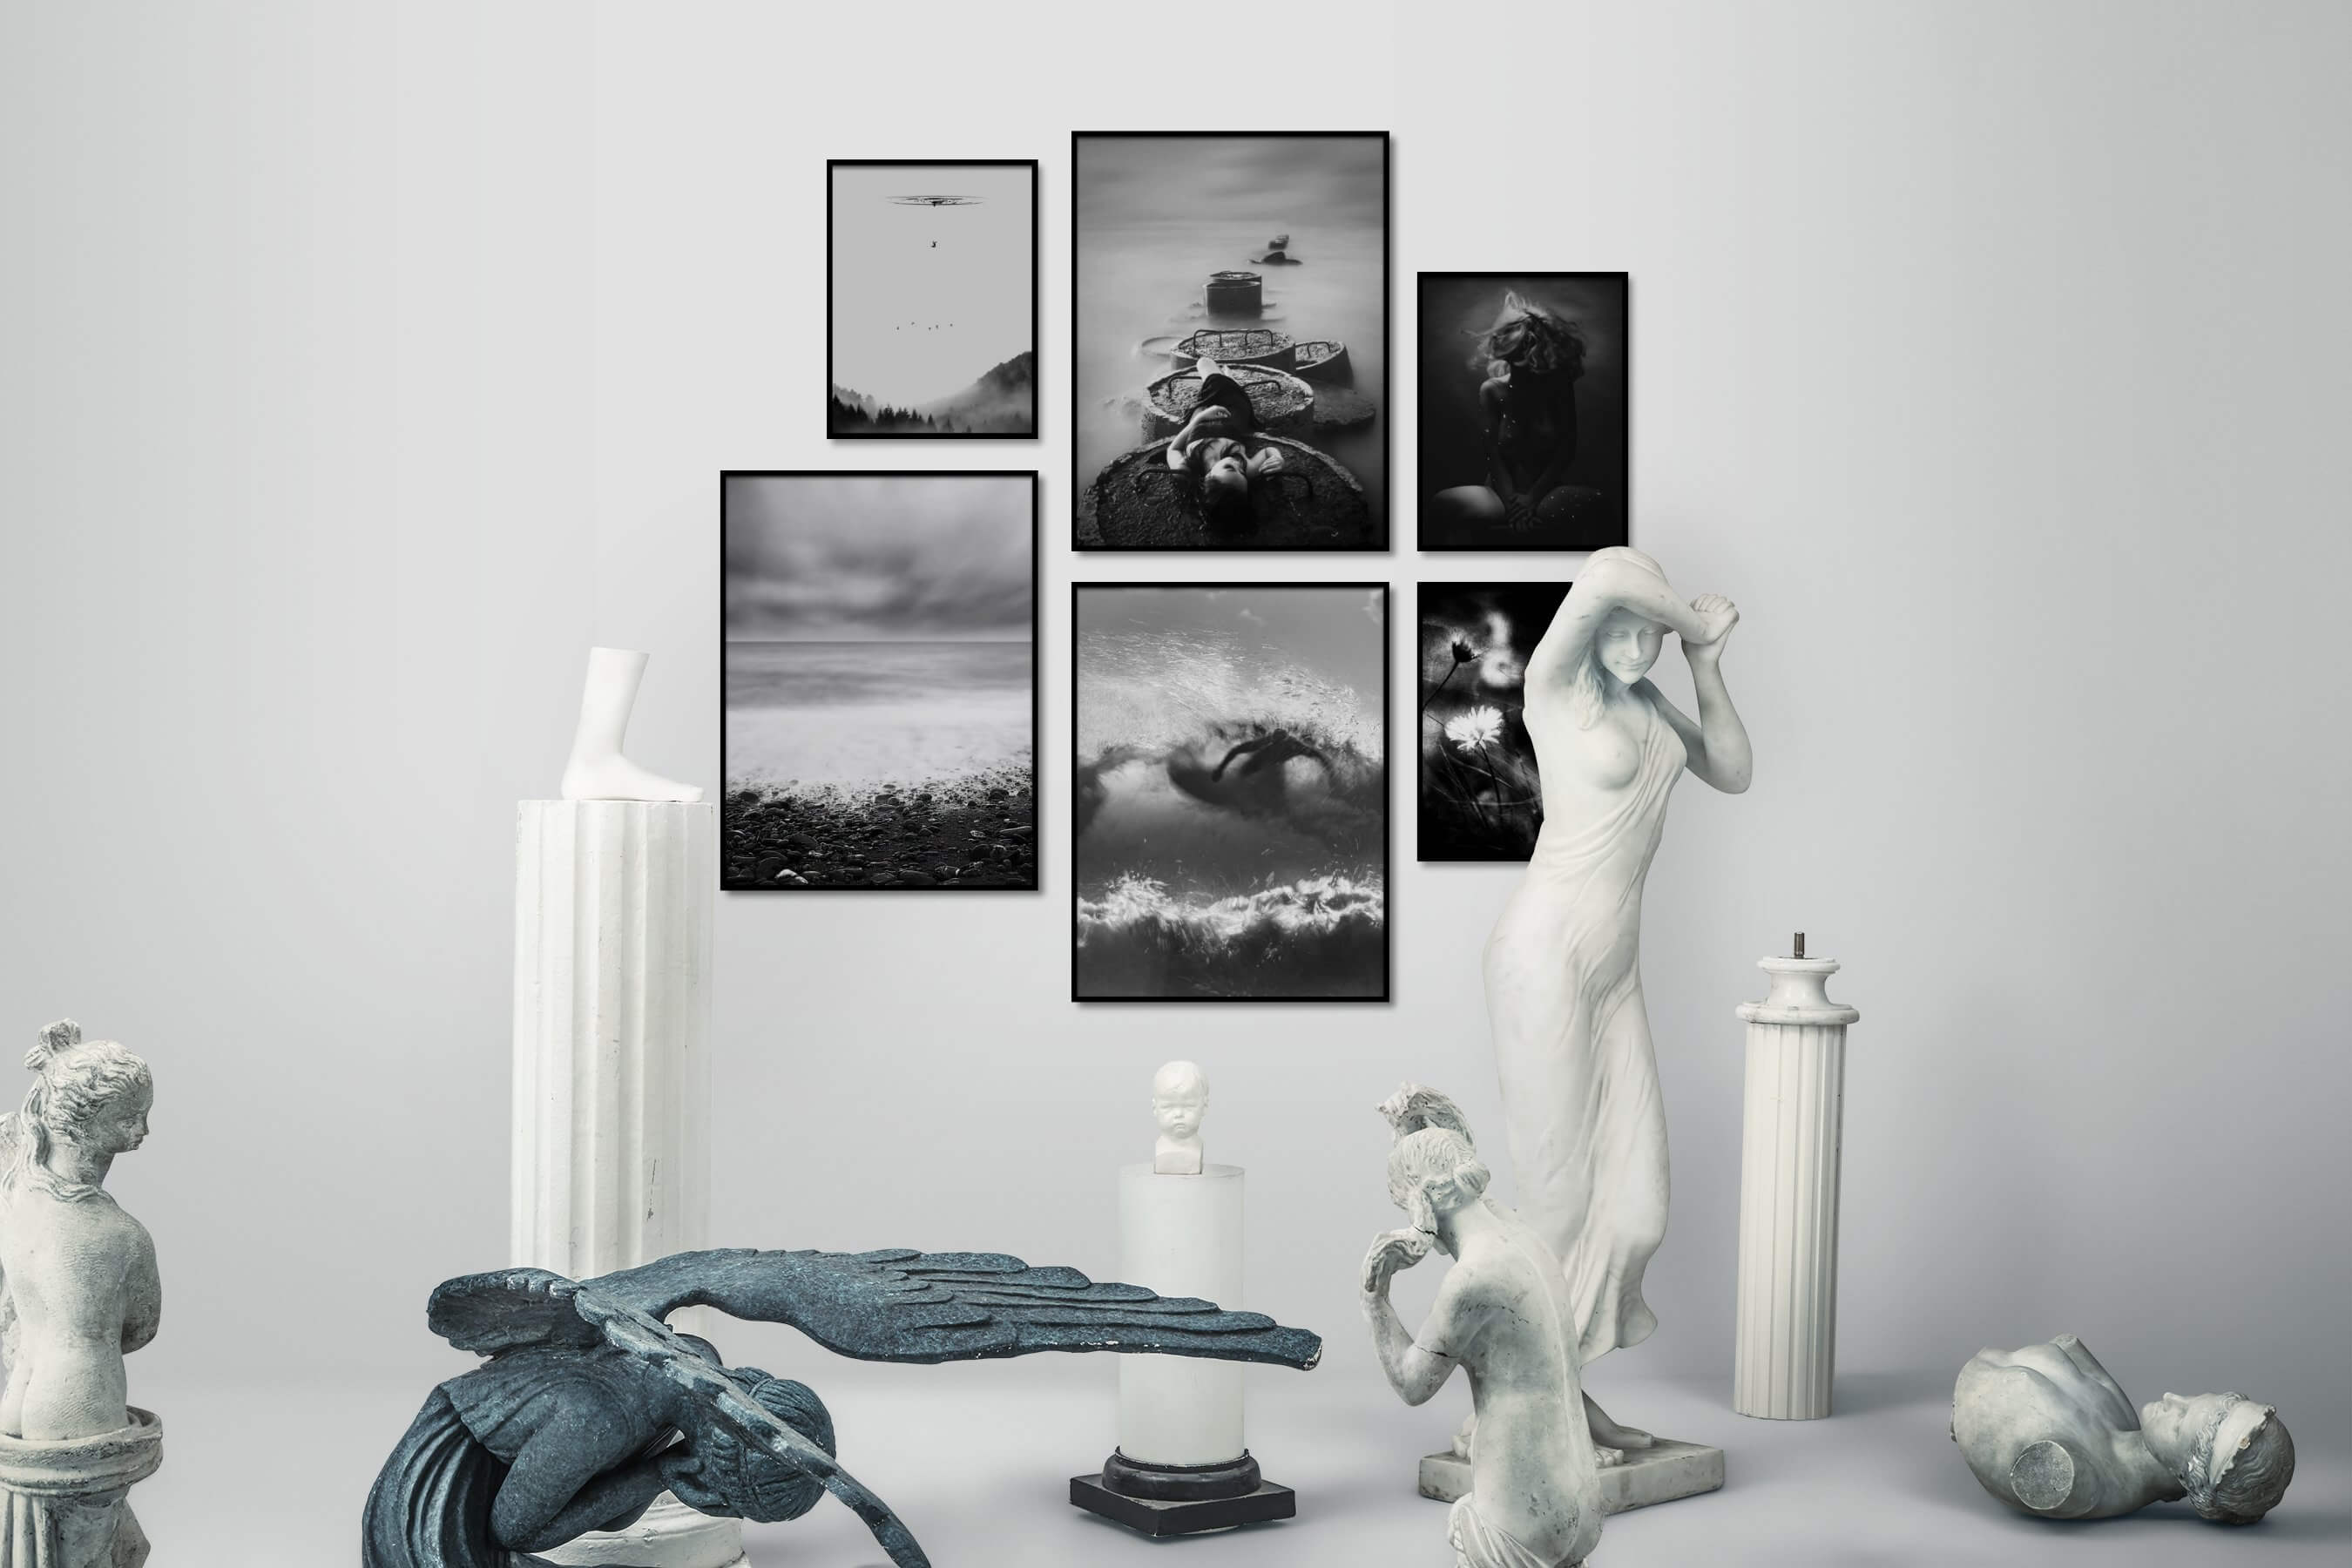 Gallery wall idea with six framed pictures arranged on a wall depicting Artsy, Black & White, For the Minimalist, Nature, Fashion & Beauty, Beach & Water, Mindfulness, Dark Tones, and Flowers & Plants